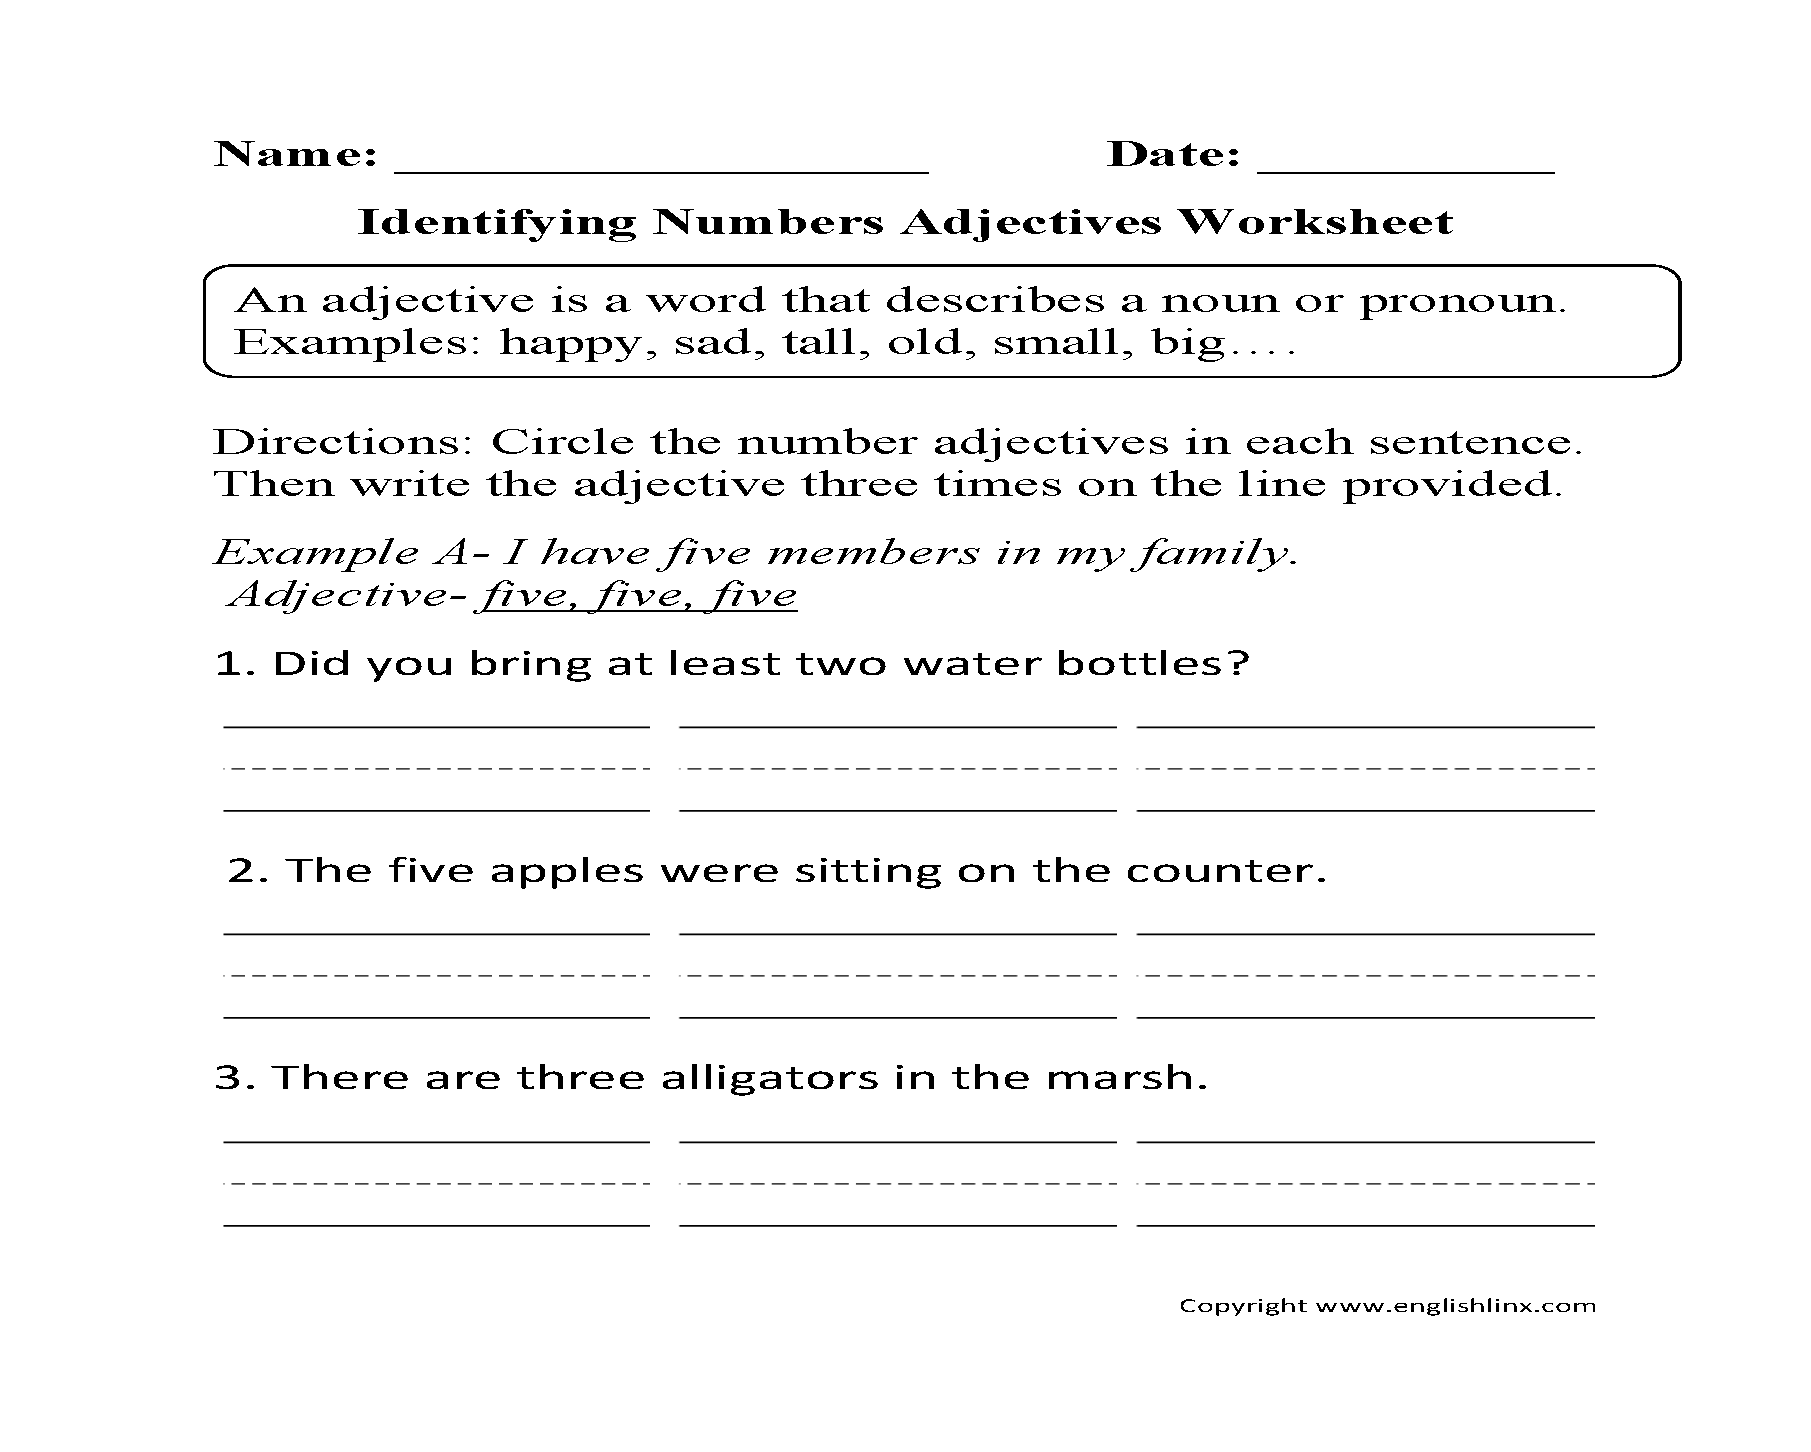 Identifying Numbers Adjectives Worksheet